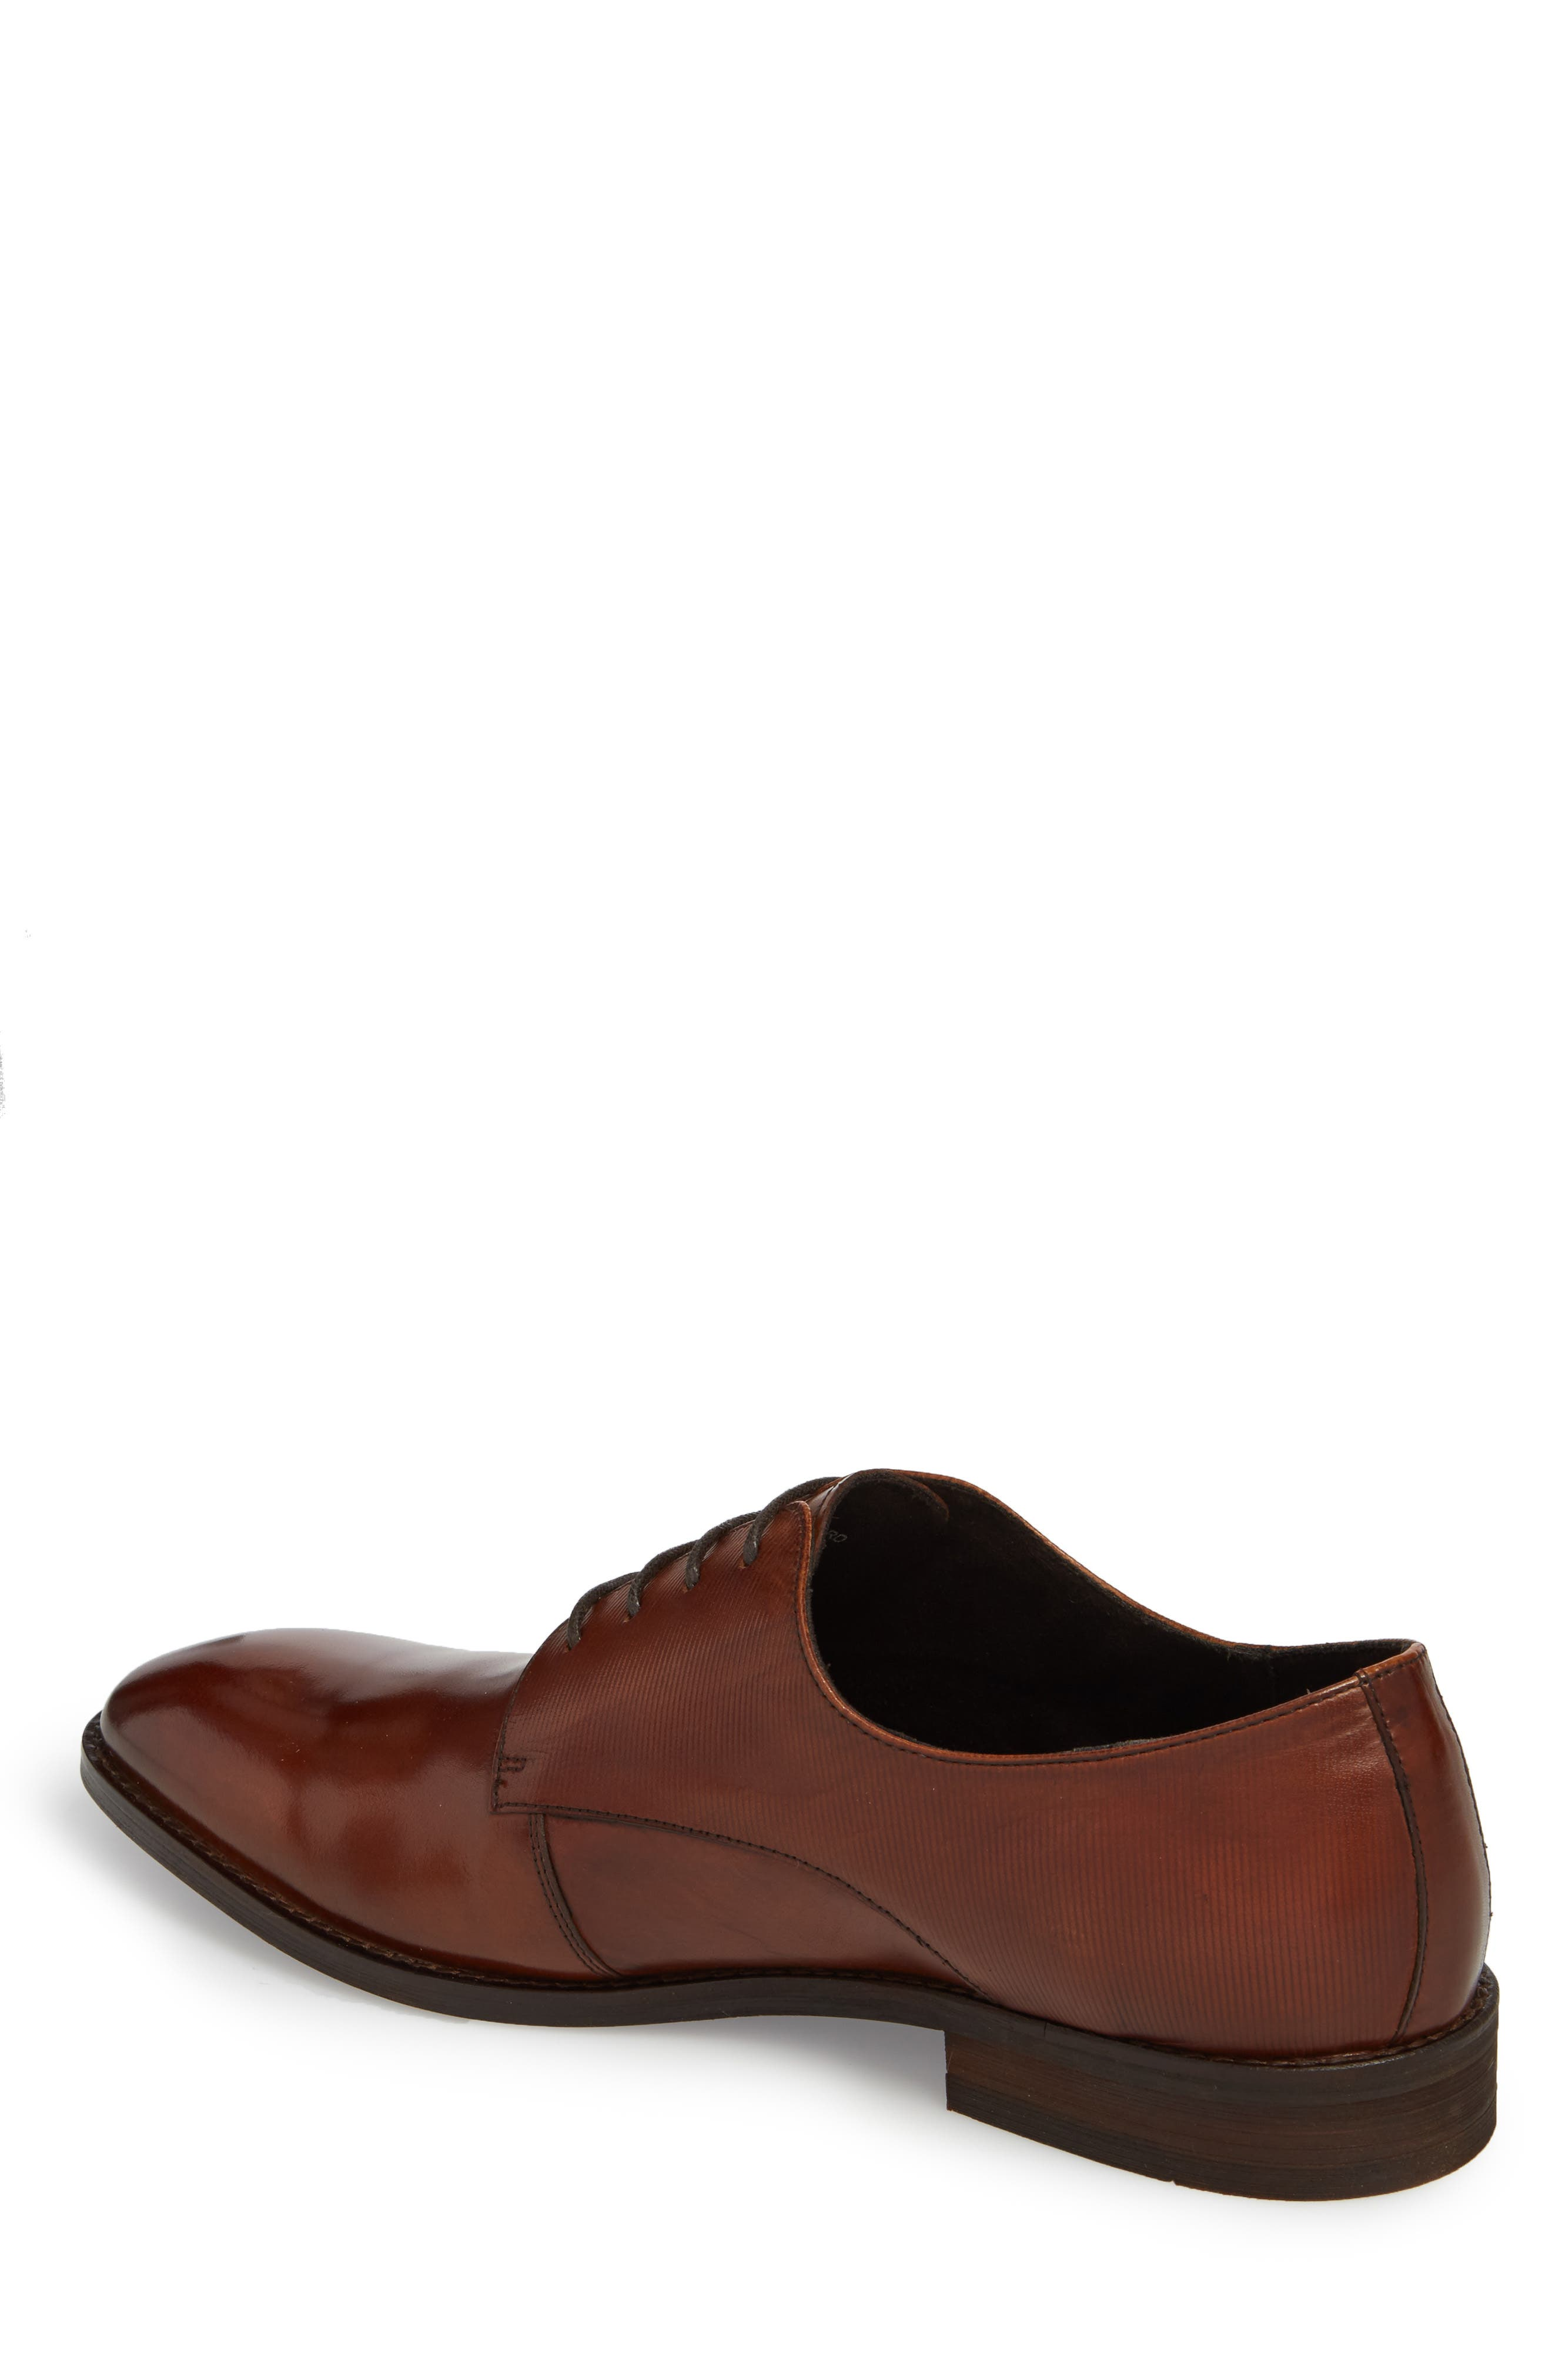 KENNETH COLE NEW YORK, Courage Plain Toe Derby, Alternate thumbnail 2, color, 200